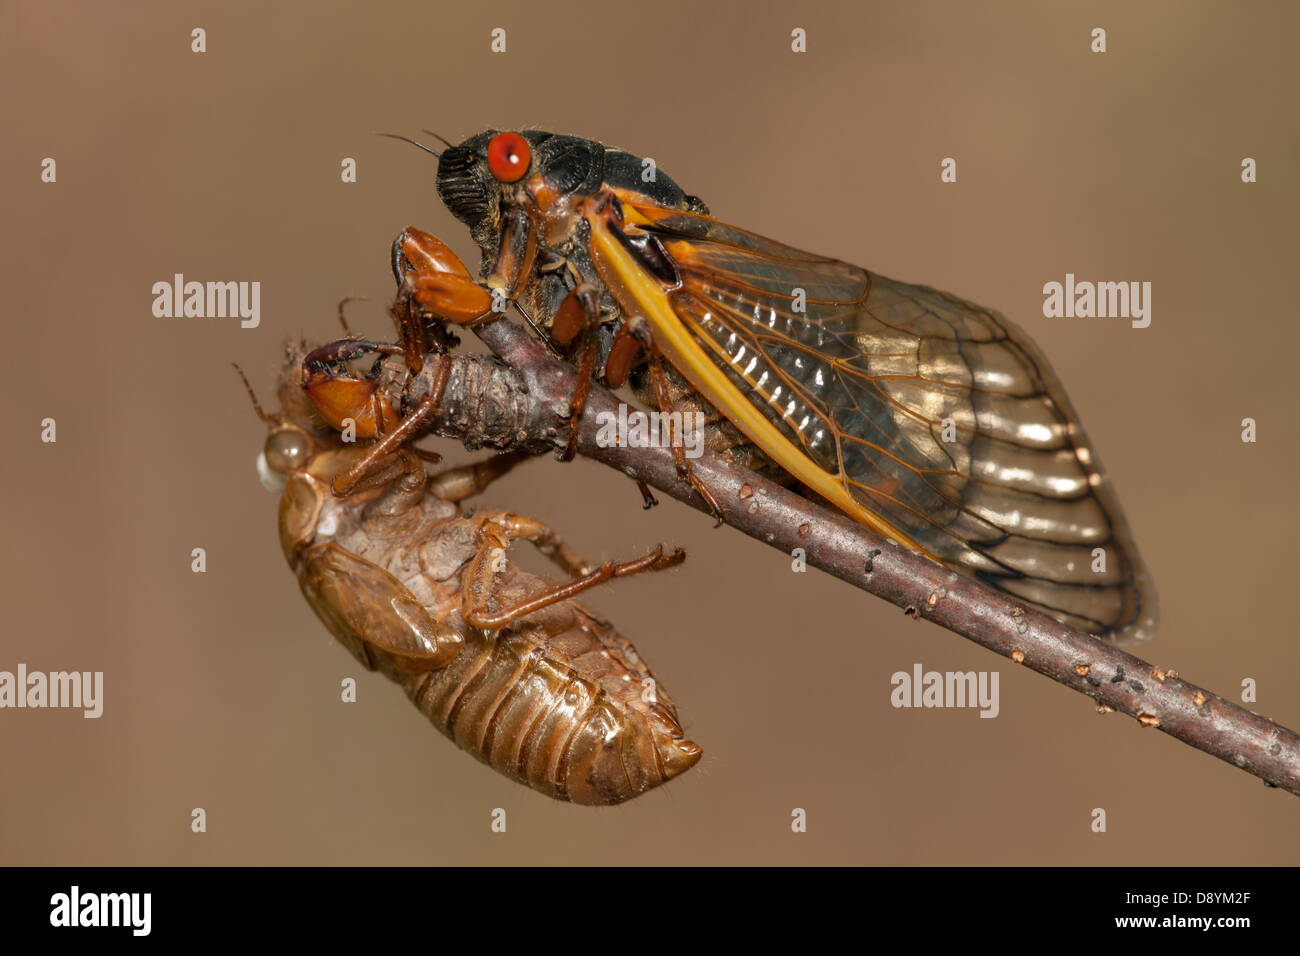 An adult 17-year periodical cicada (Magicicada septendecim) clings to a twig above its recently shed skin (exuvia) - Stock Image